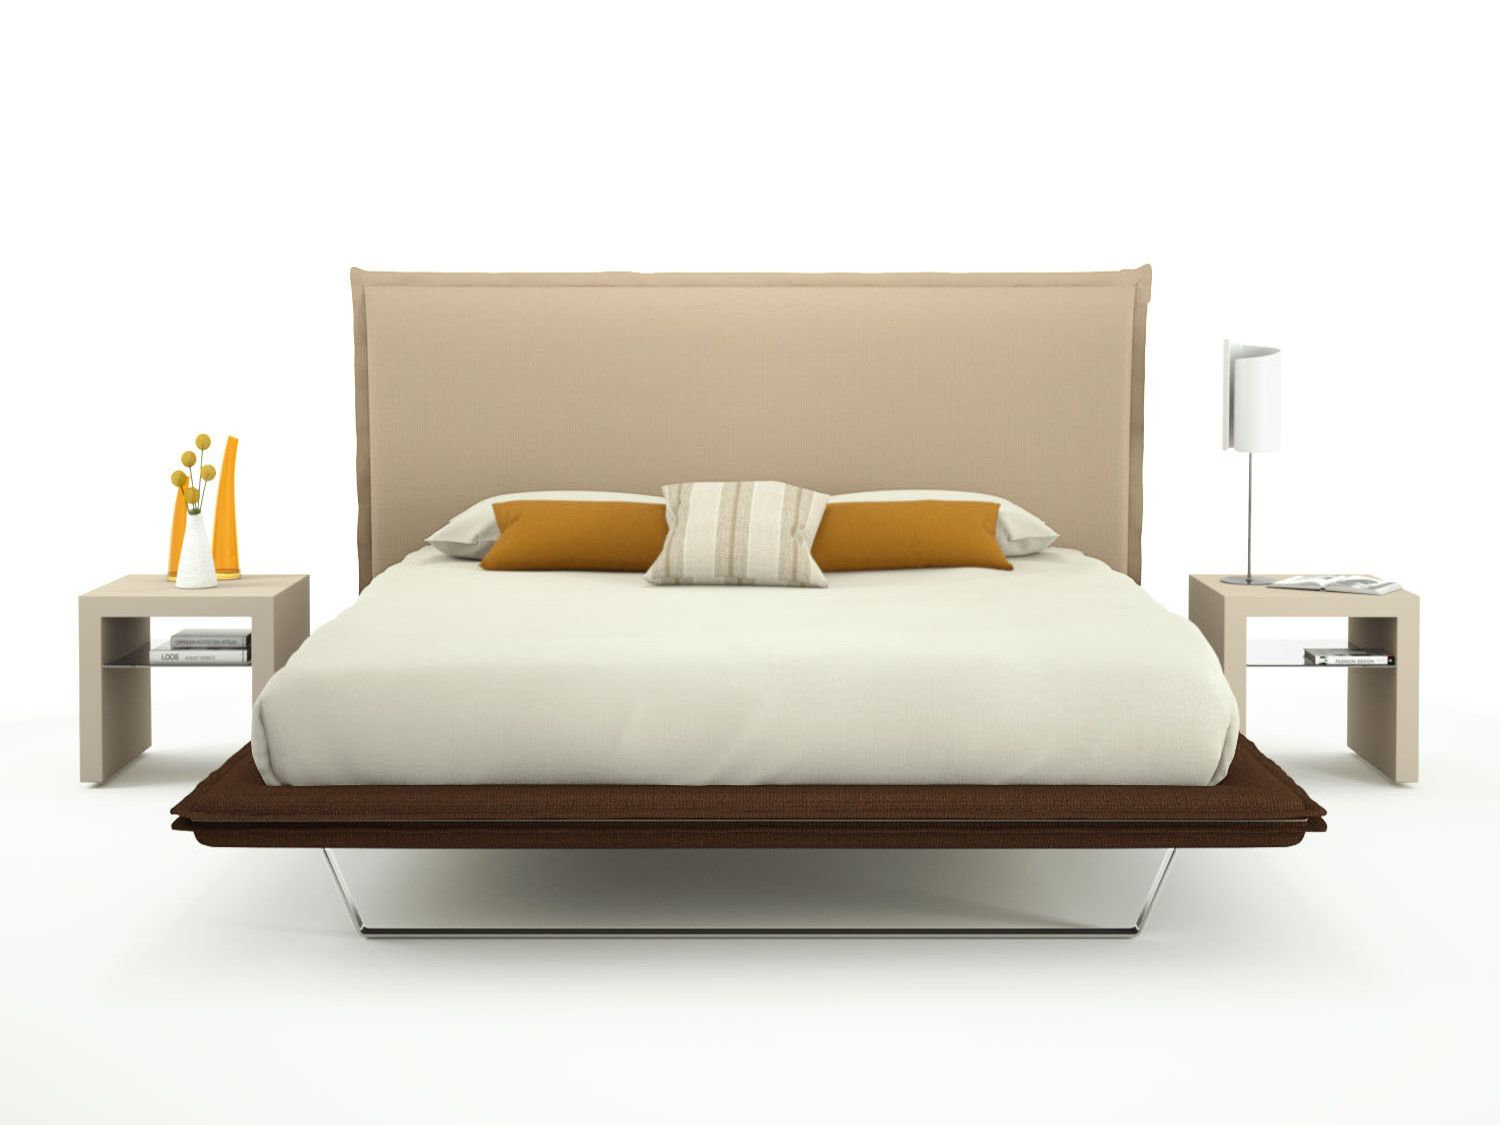 Charme Two Tone Bed With High Headboard Diotti Com Headboard Bed Frame And Headboard High Bed Frame